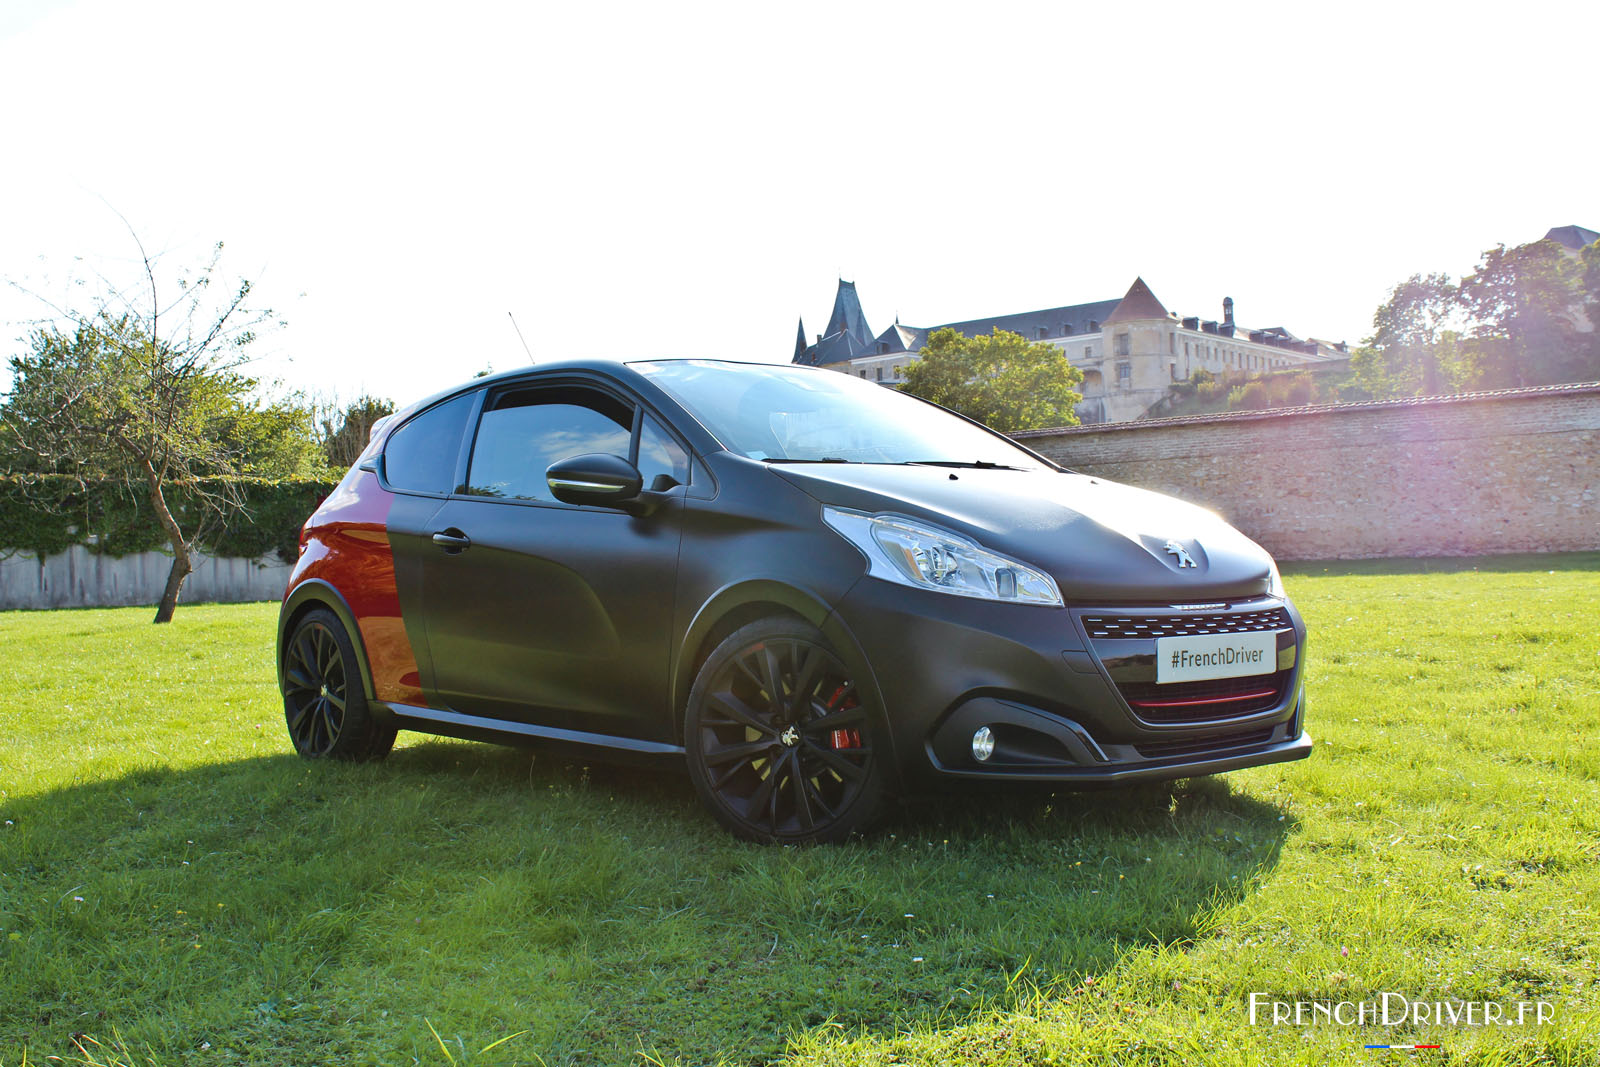 essai de la peugeot 208 gti by peugeot sport la lionne sort les griffes french driver. Black Bedroom Furniture Sets. Home Design Ideas